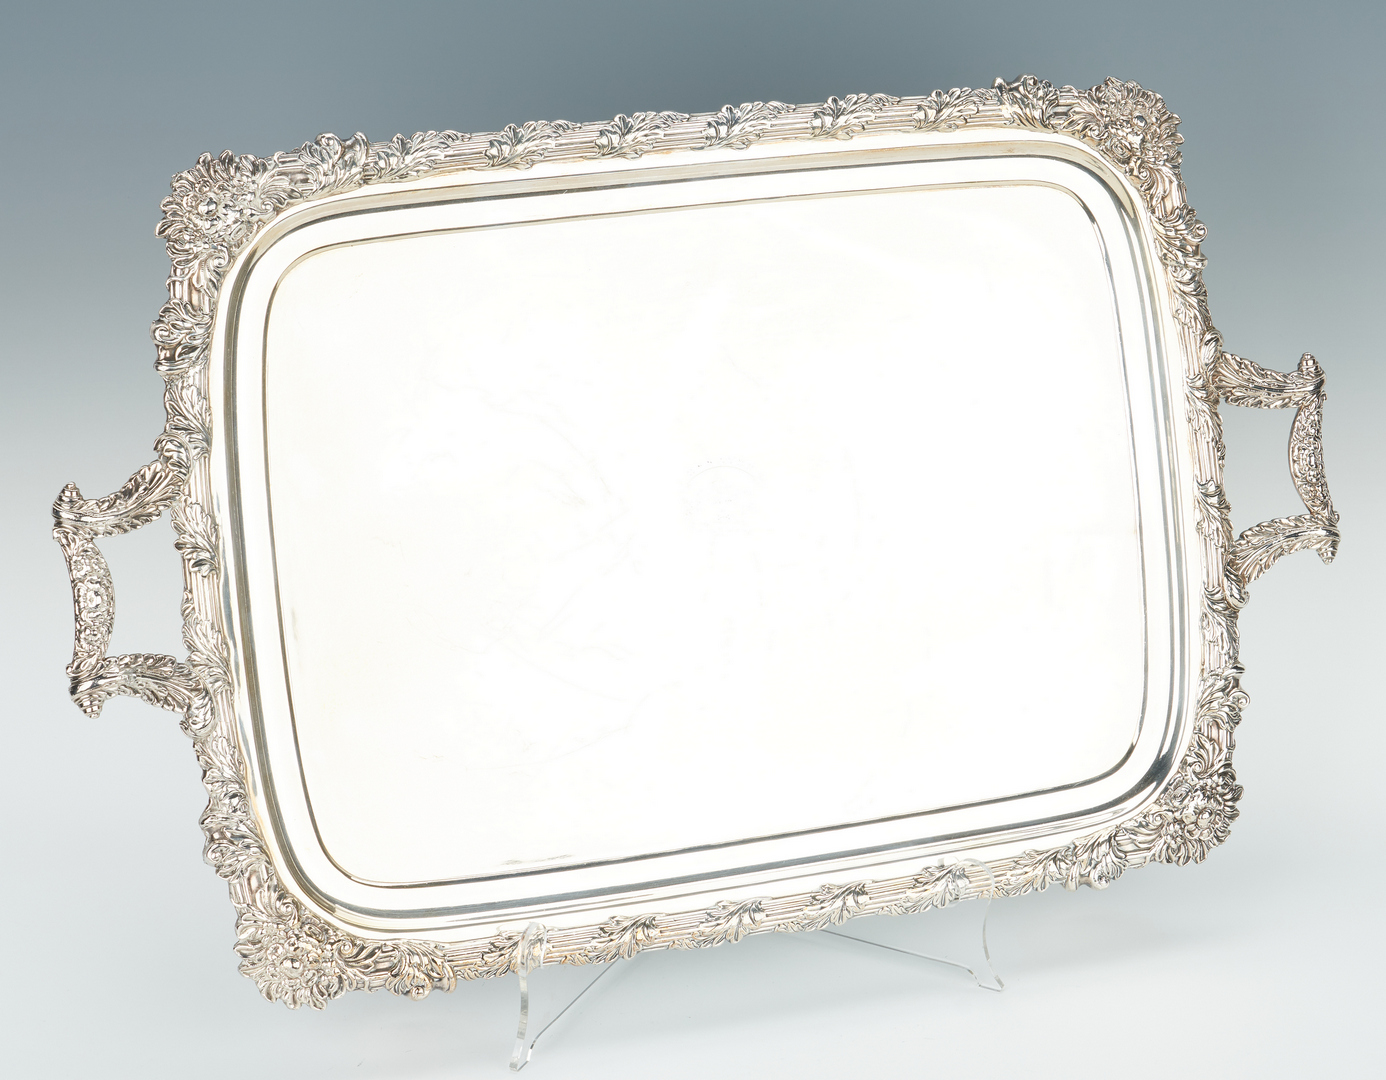 Lot 68: 4 Pc. English Sterling Tea Service + Old Sheffield Tray